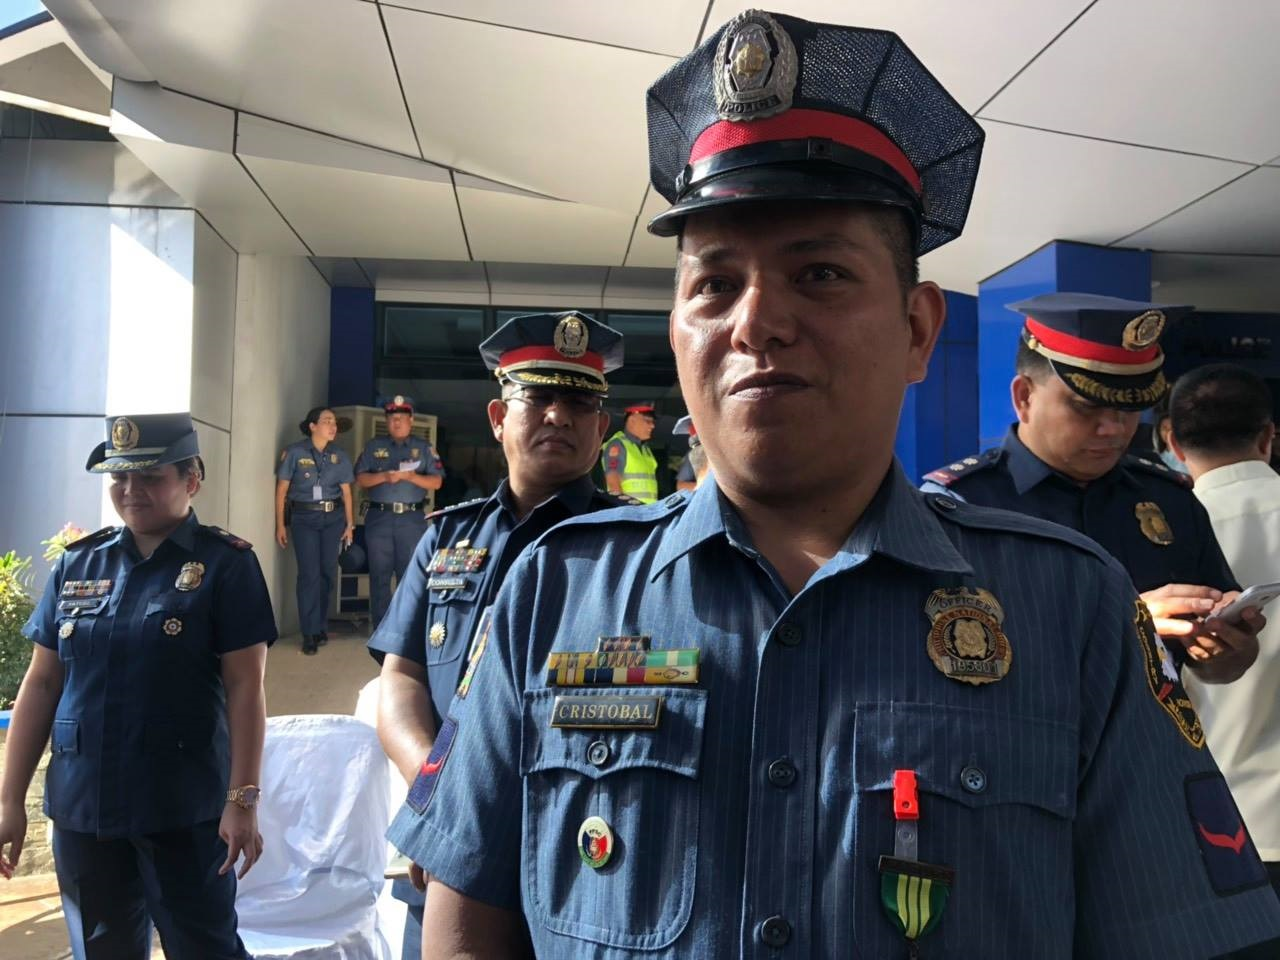 Cop receives 'Medalya ng Papuri' after impressive response during MRT 'taho' incident